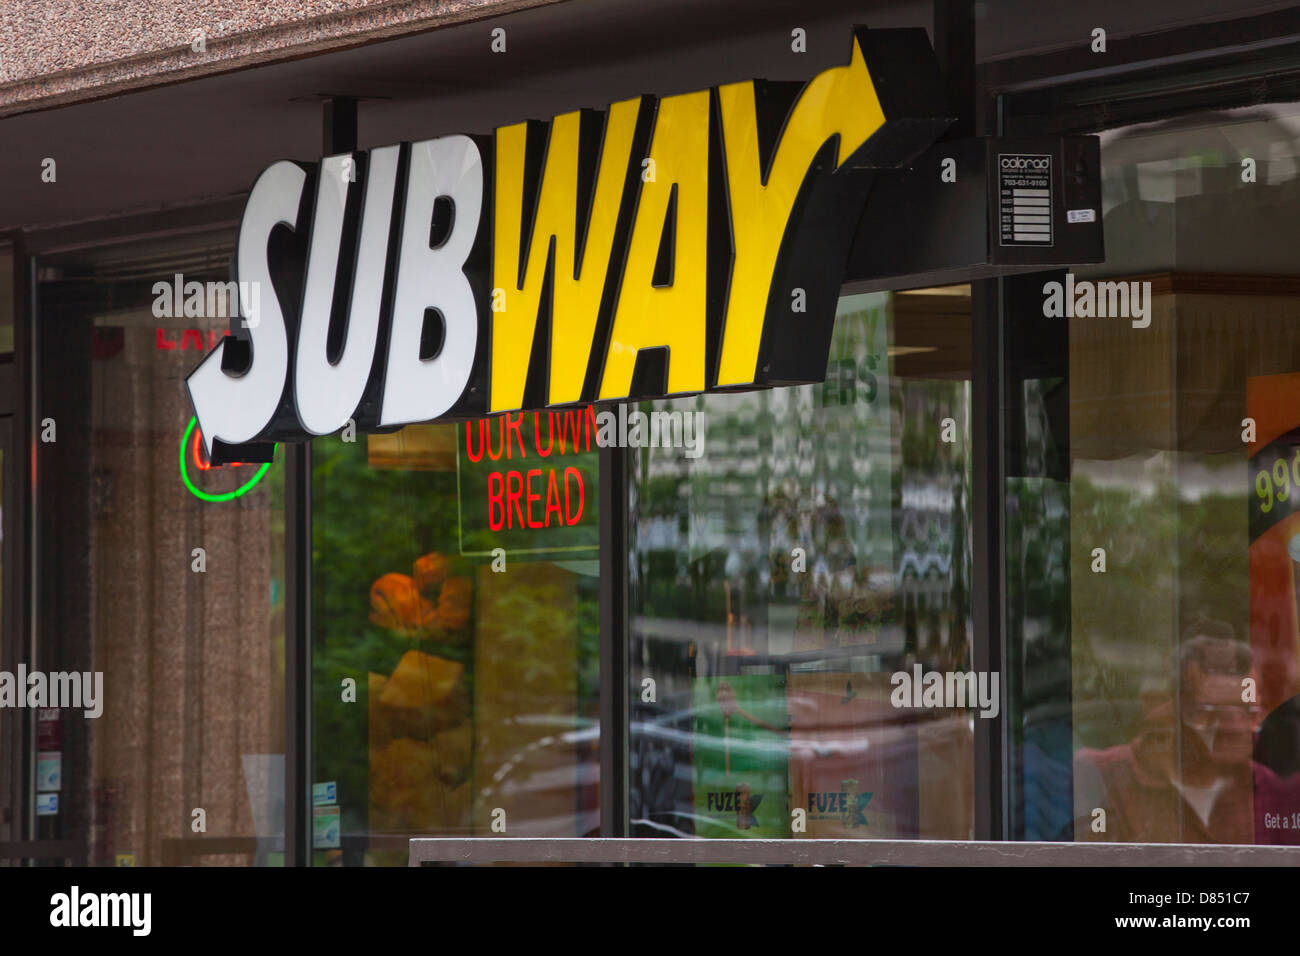 Subway restaurant sign - USA - Stock Image